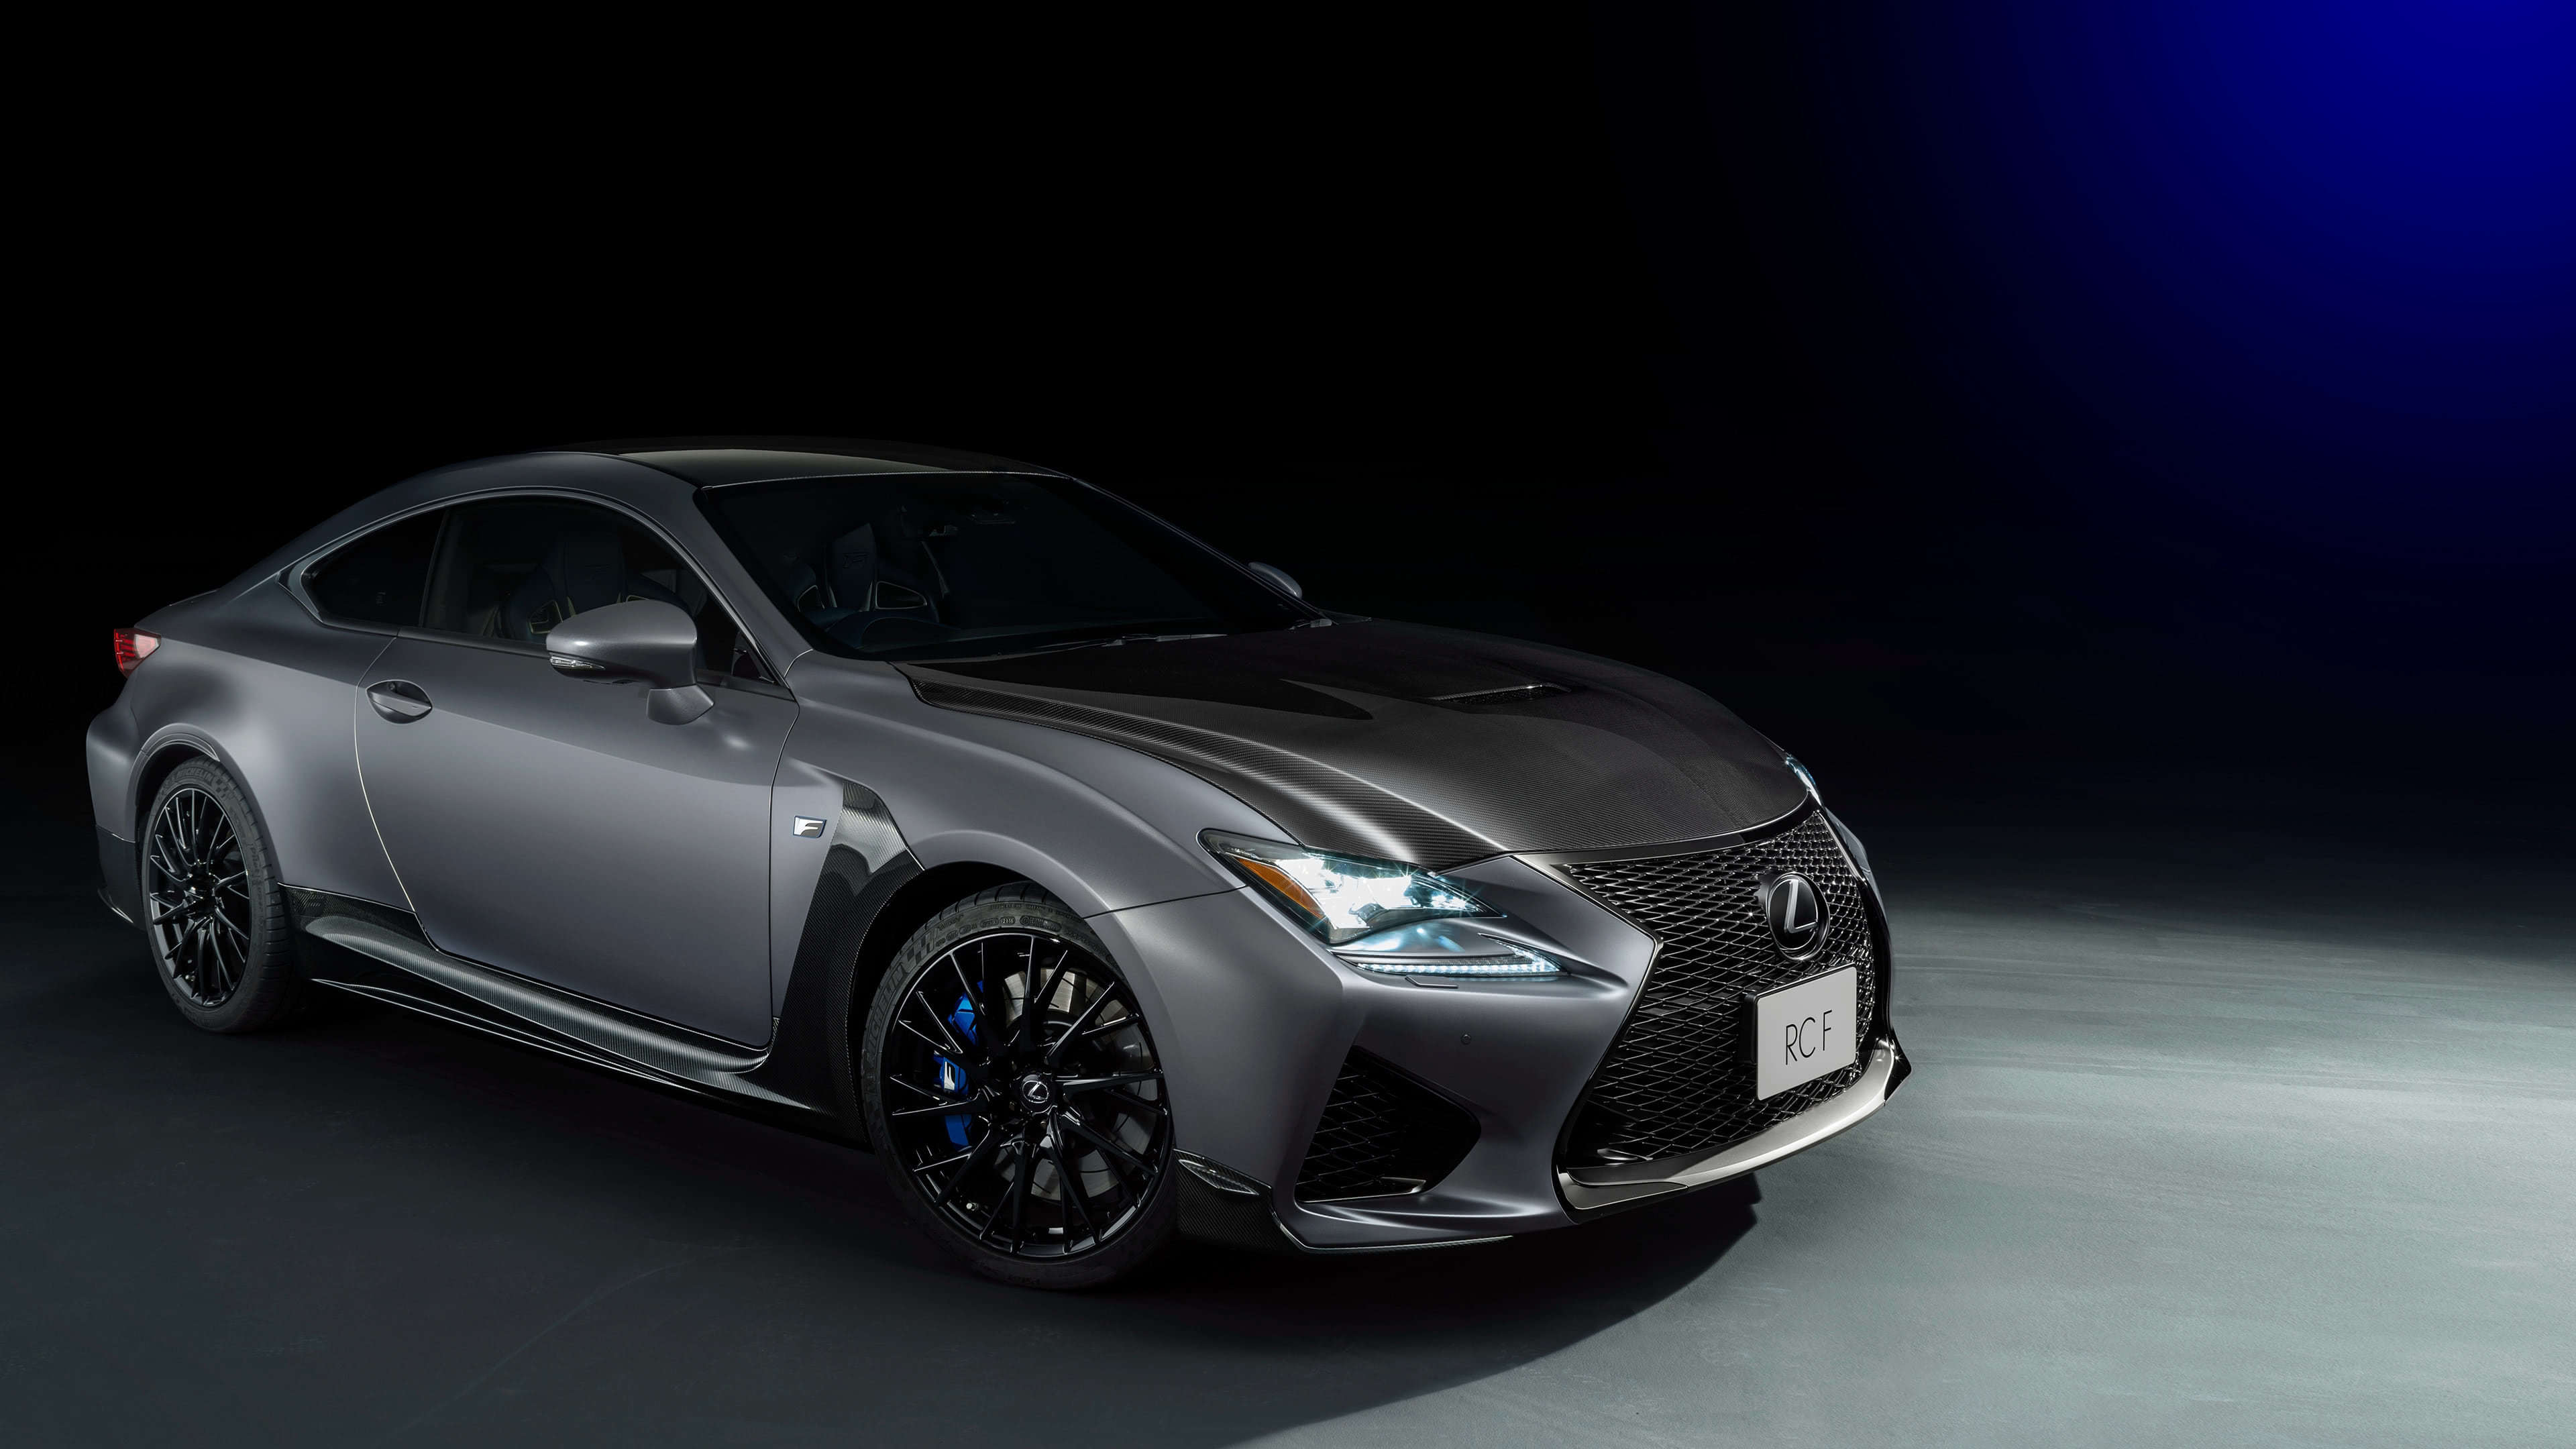 lexus rc f 10th anniversary limited edition uhd 4k wallpaper